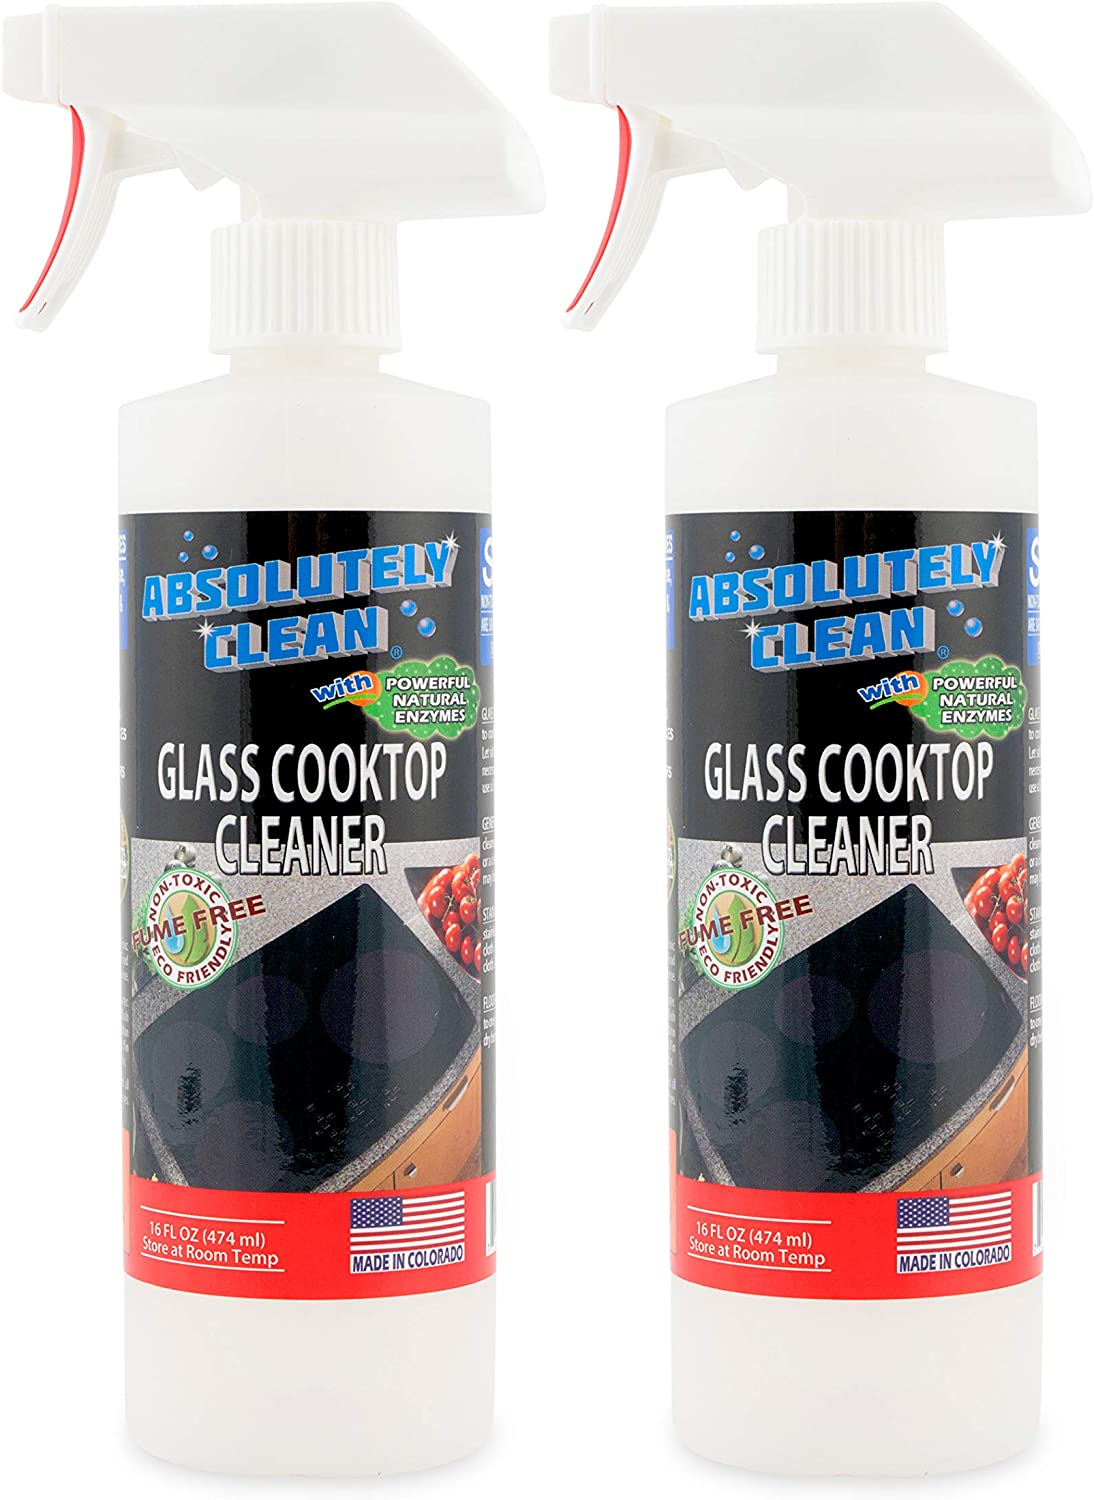 Amazing Ceramic & Glasstop Stove Cleaner - Fume Free & Scratch Free - Streakfree - Non-Toxic - Kid & Pet Friendly - USA Made